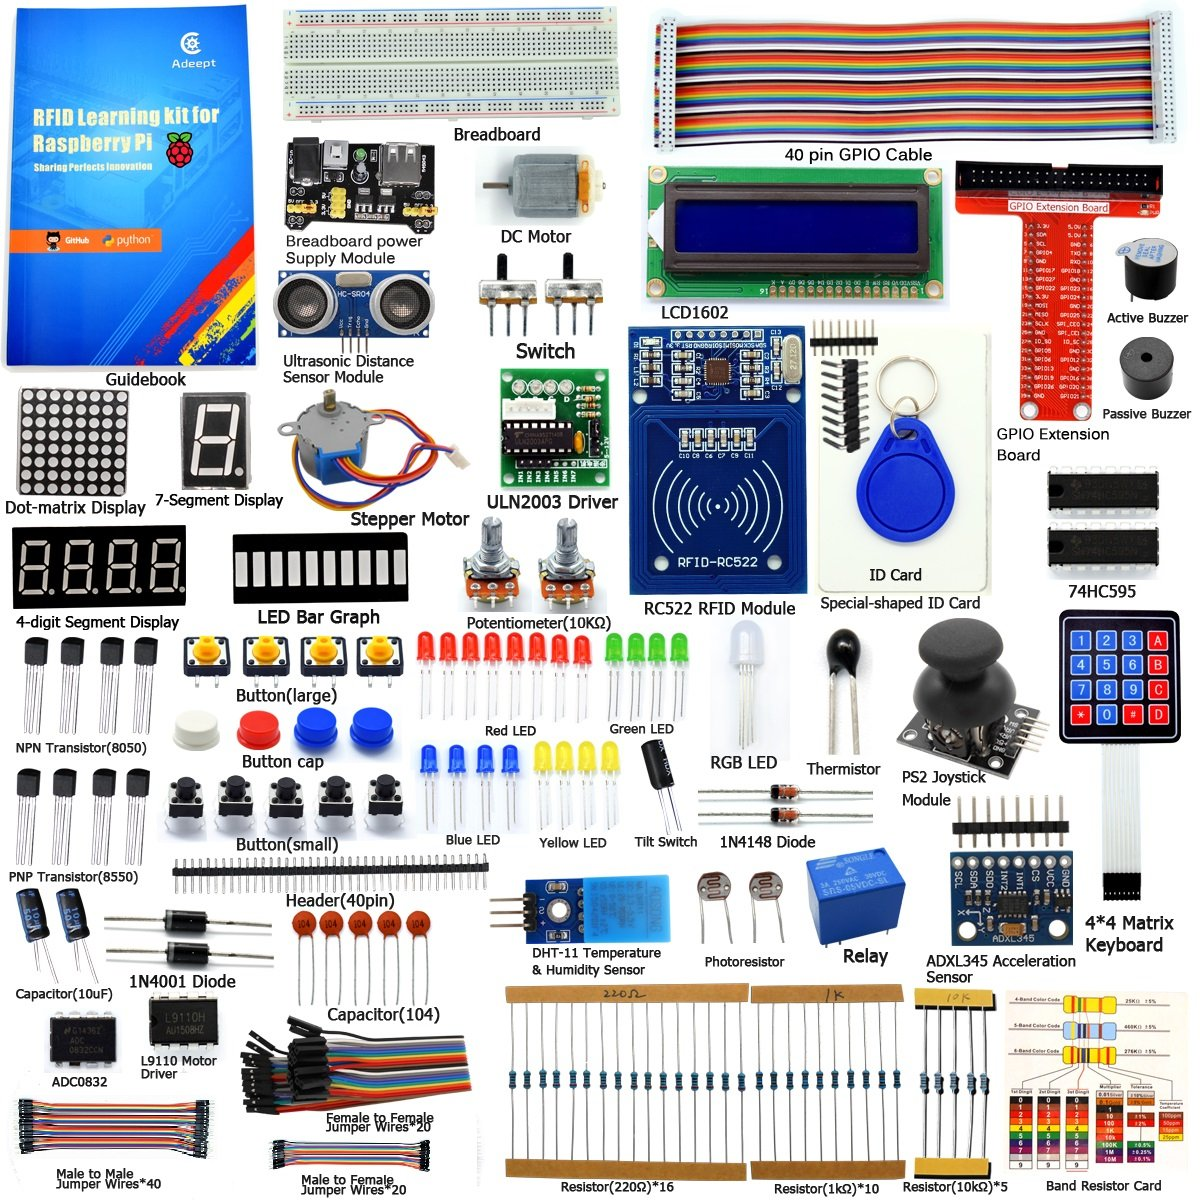 Adeept RFID Starter Kit for Raspberry Pi 3, 2 Model B/B+, Stepper Motor, ADXL345, 40-pin GPIO Extension Board, with C and Python Code, Beginner/Learning Kit with 140 Pages Printed Guidebook [Classe di efficienza energetica A++] ADR008